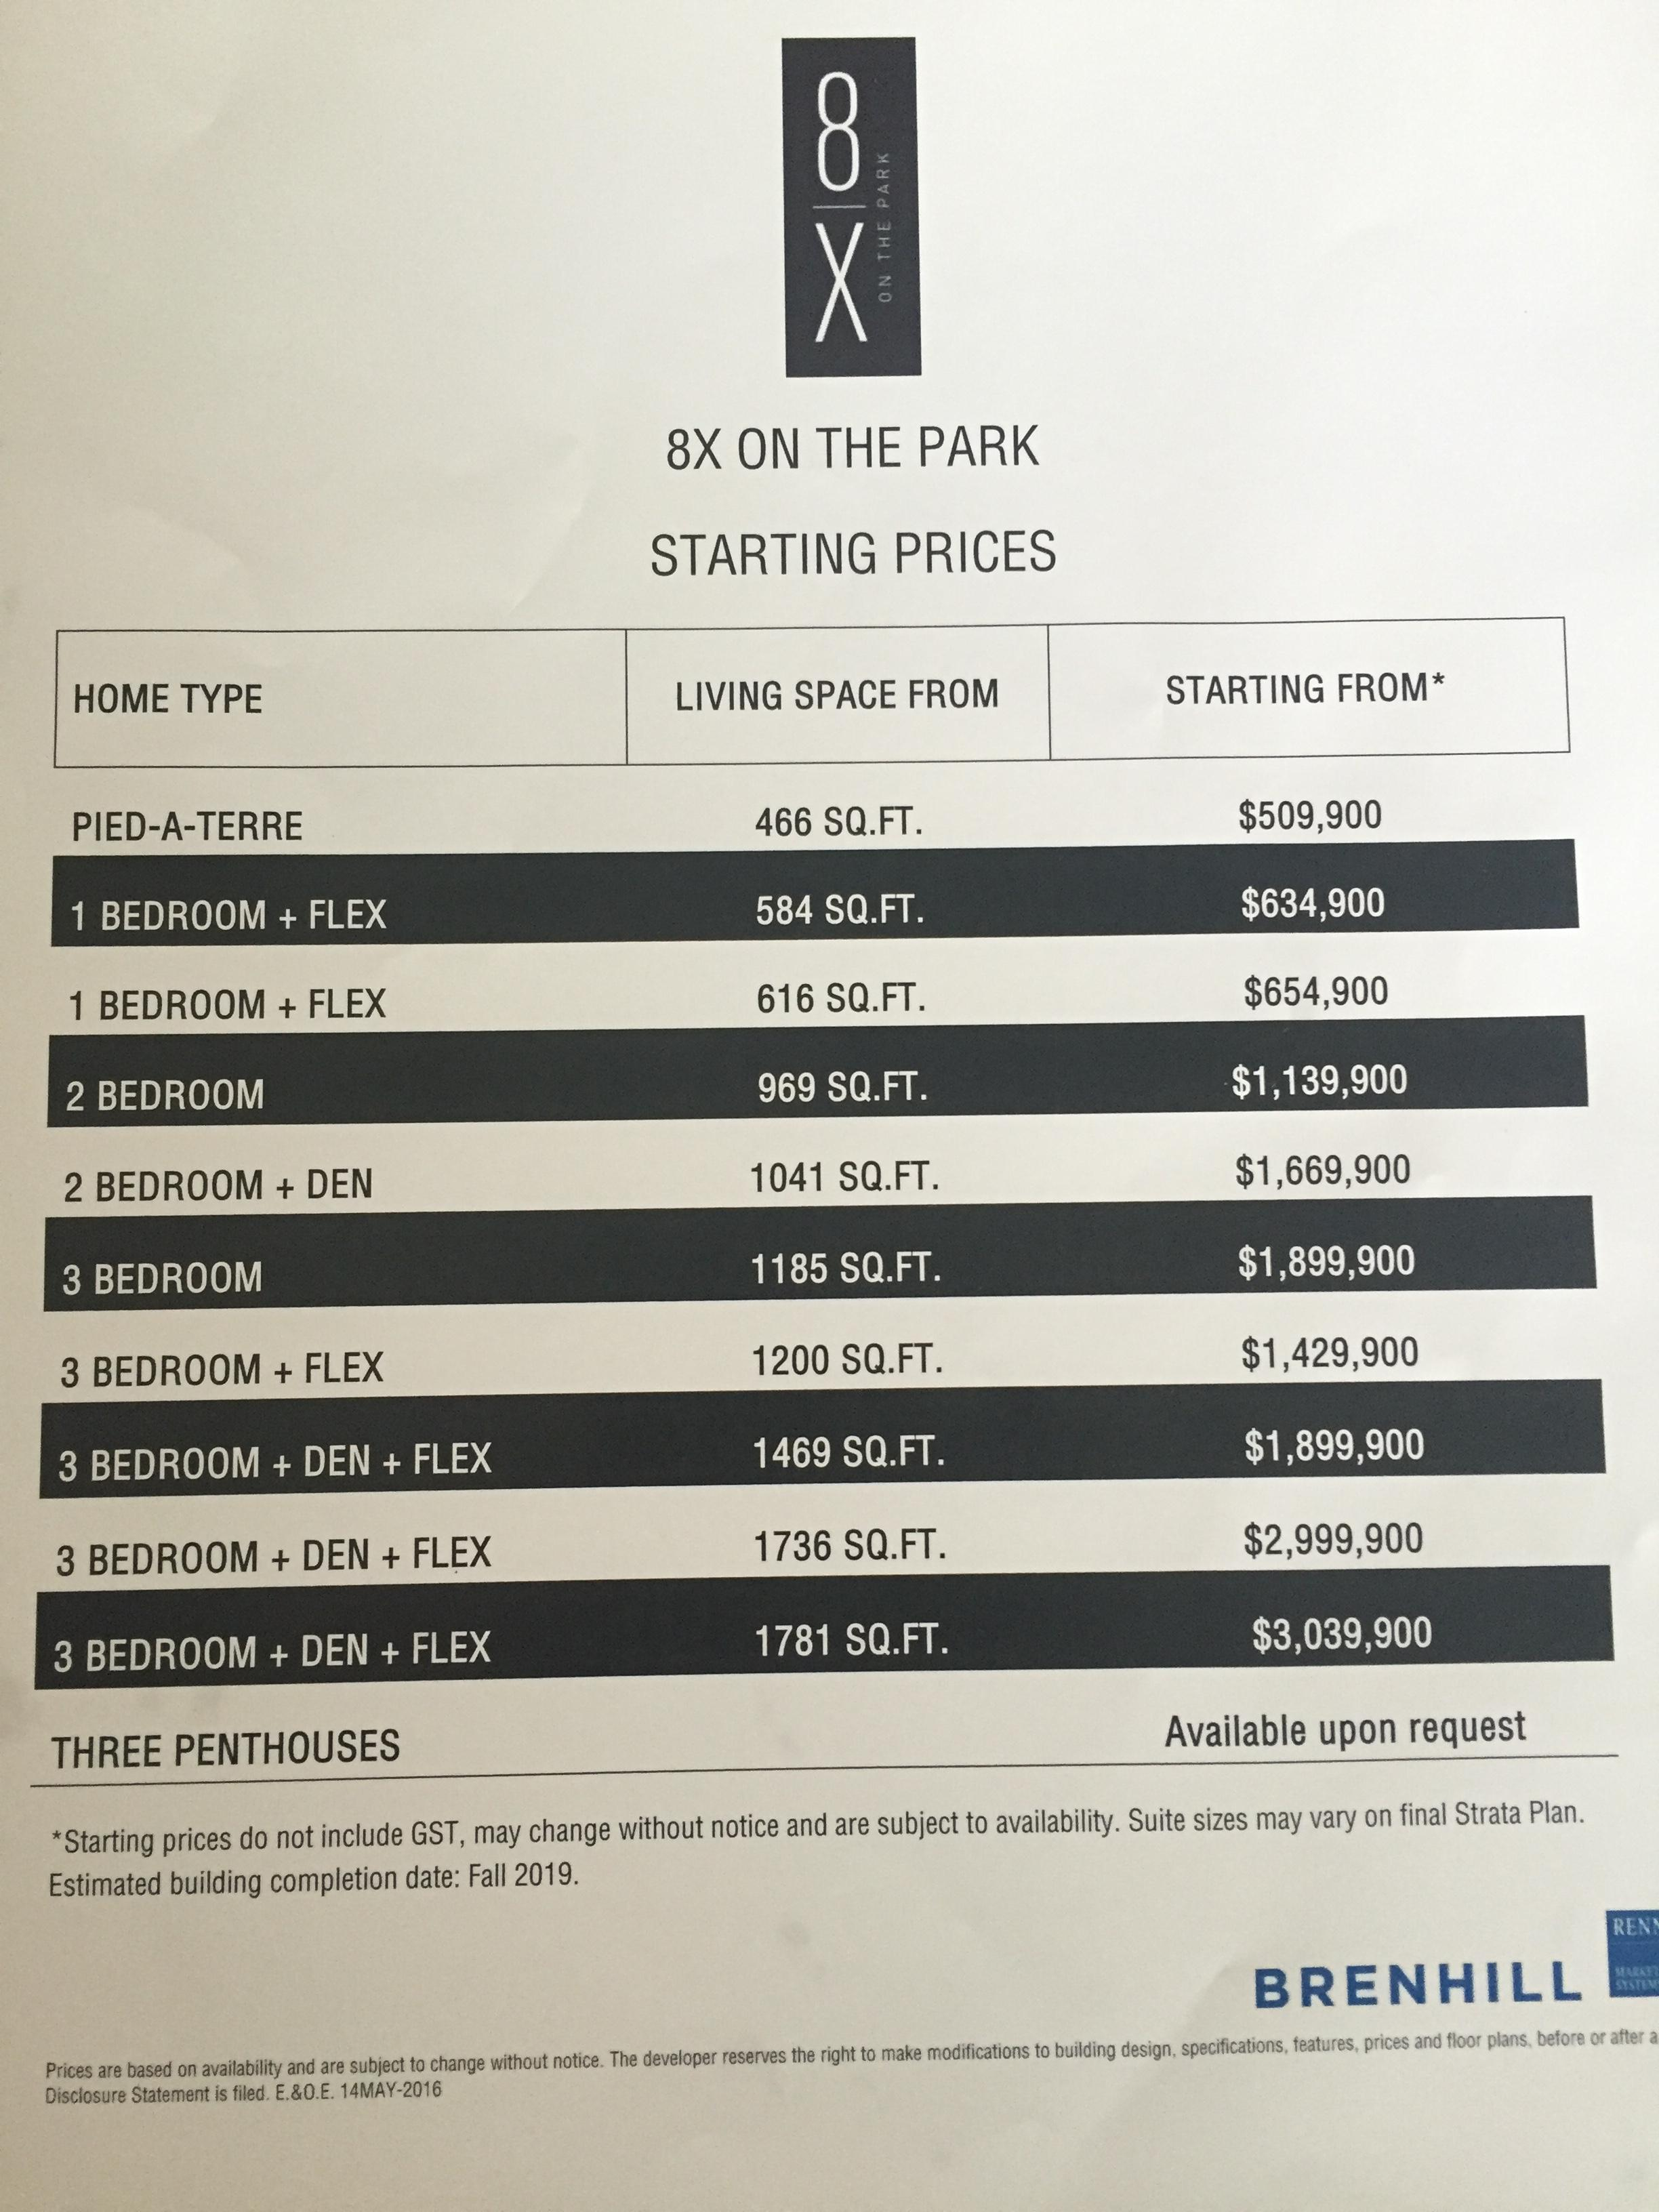 8x on the park prices